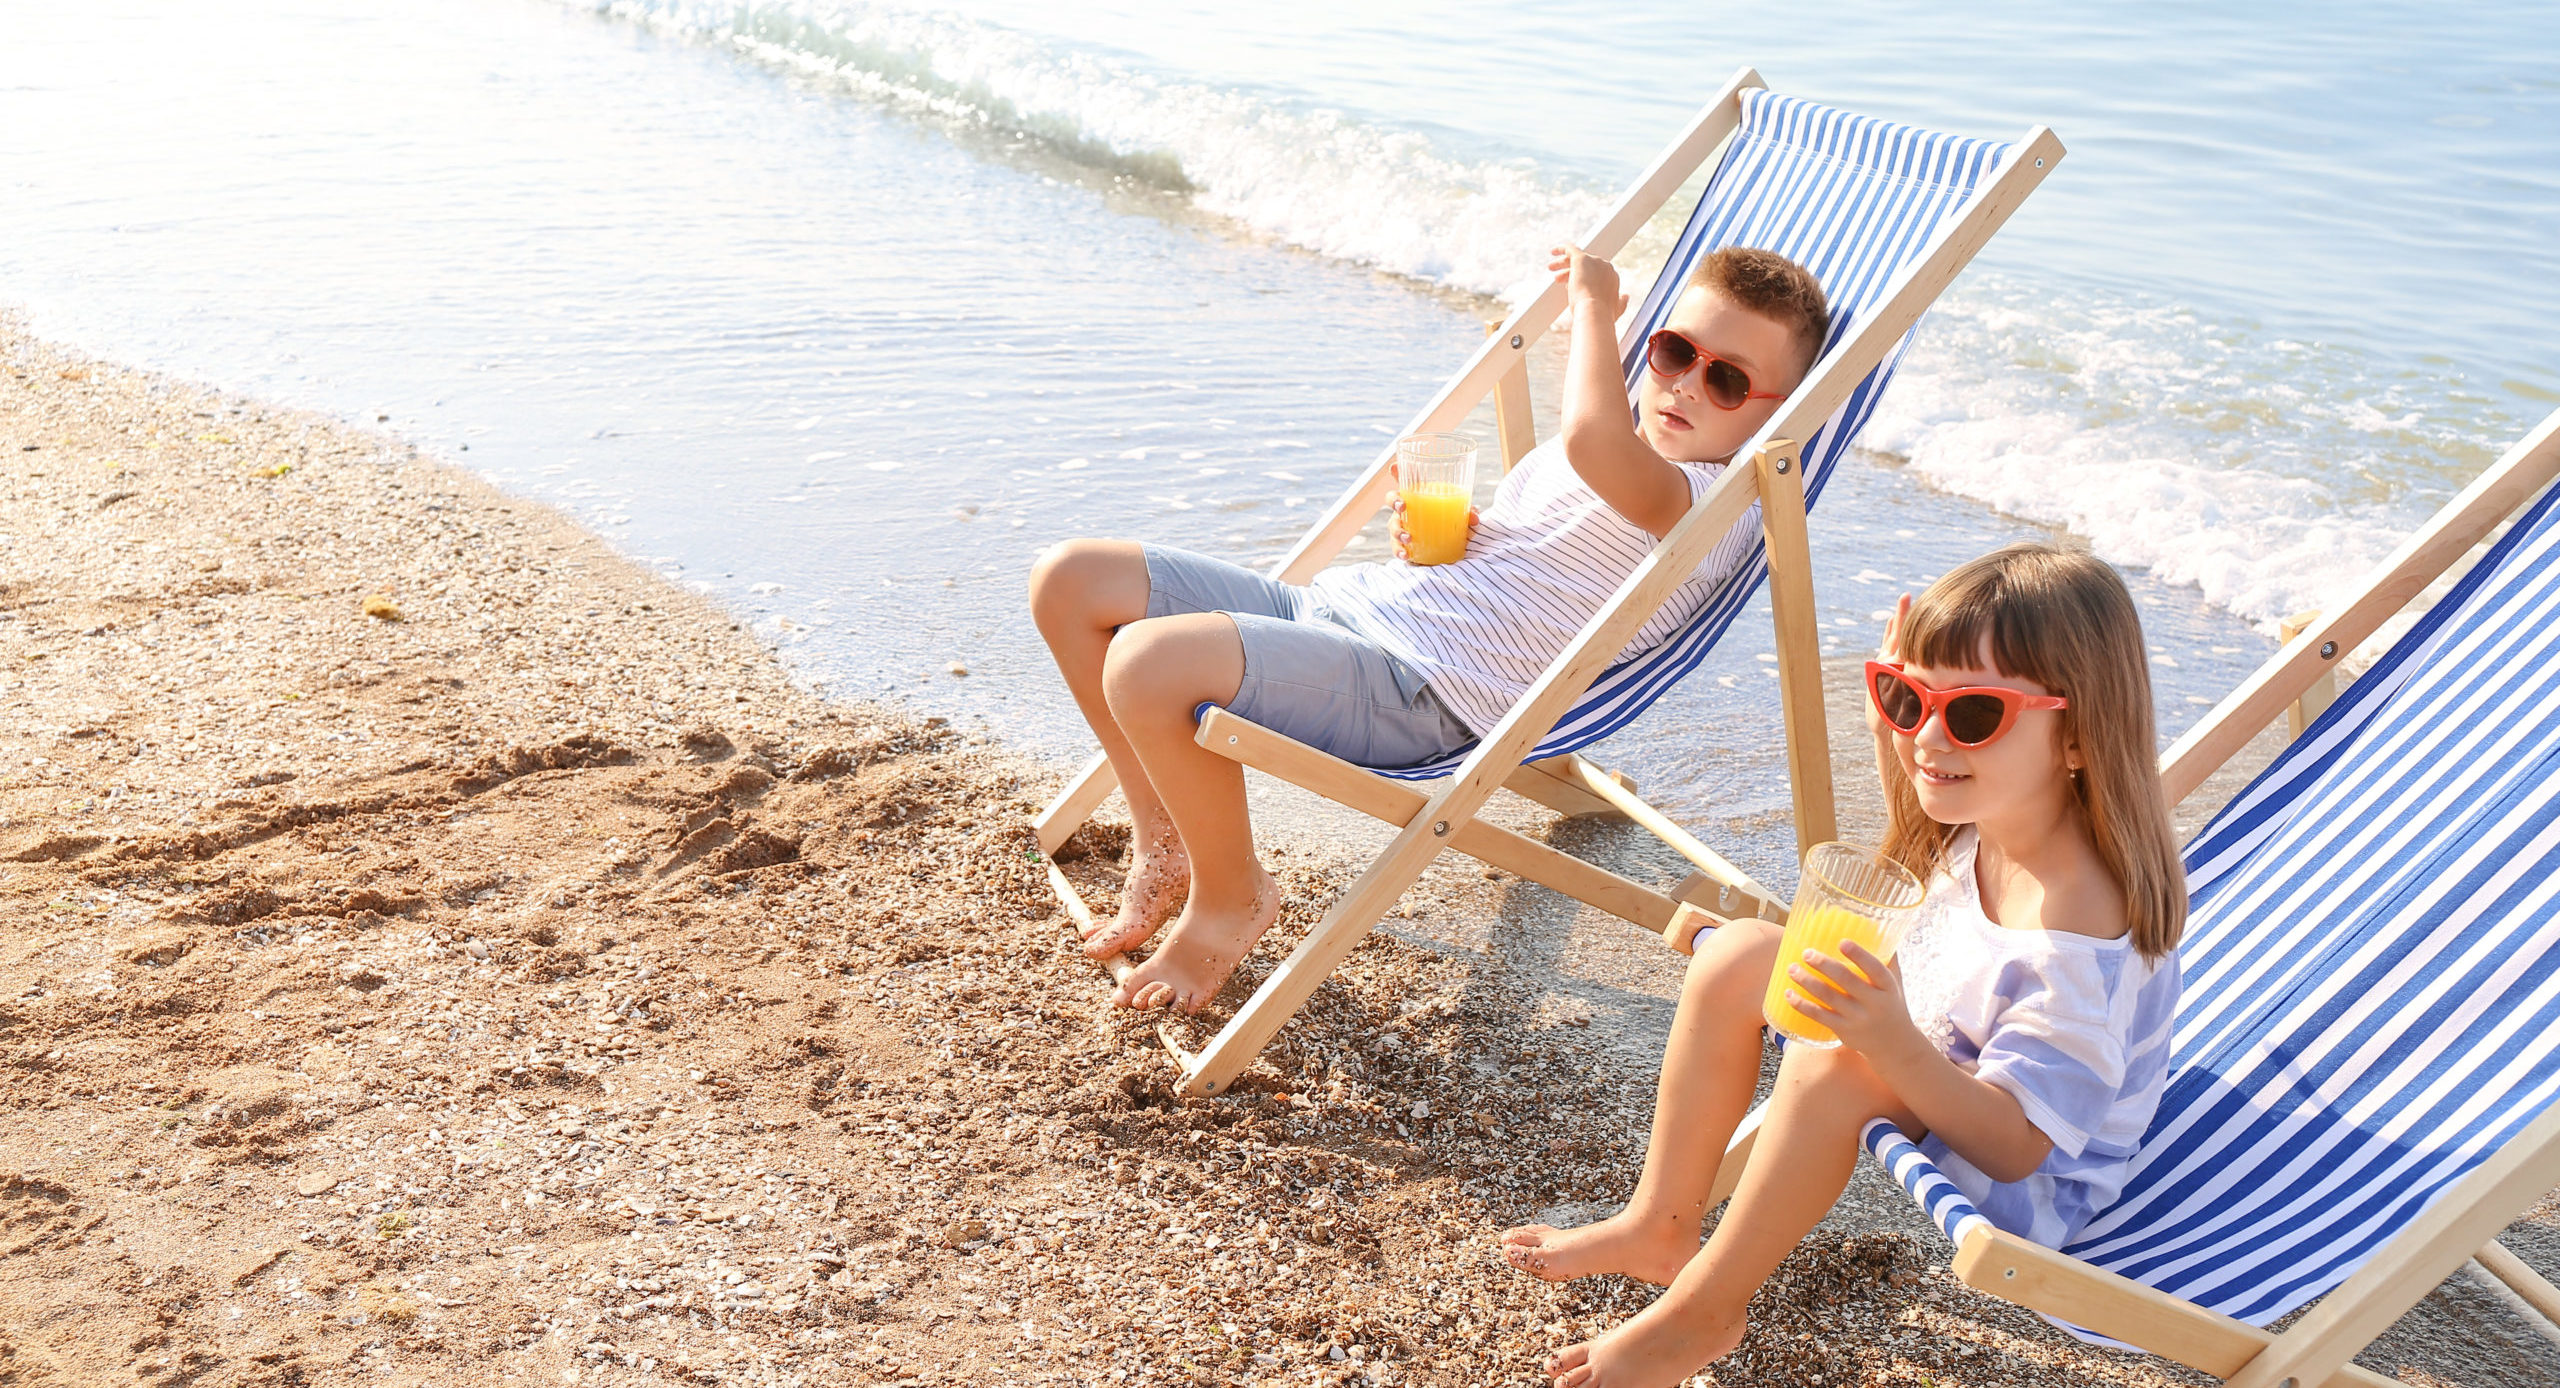 Two children drinking juice on the beach in beach chairs